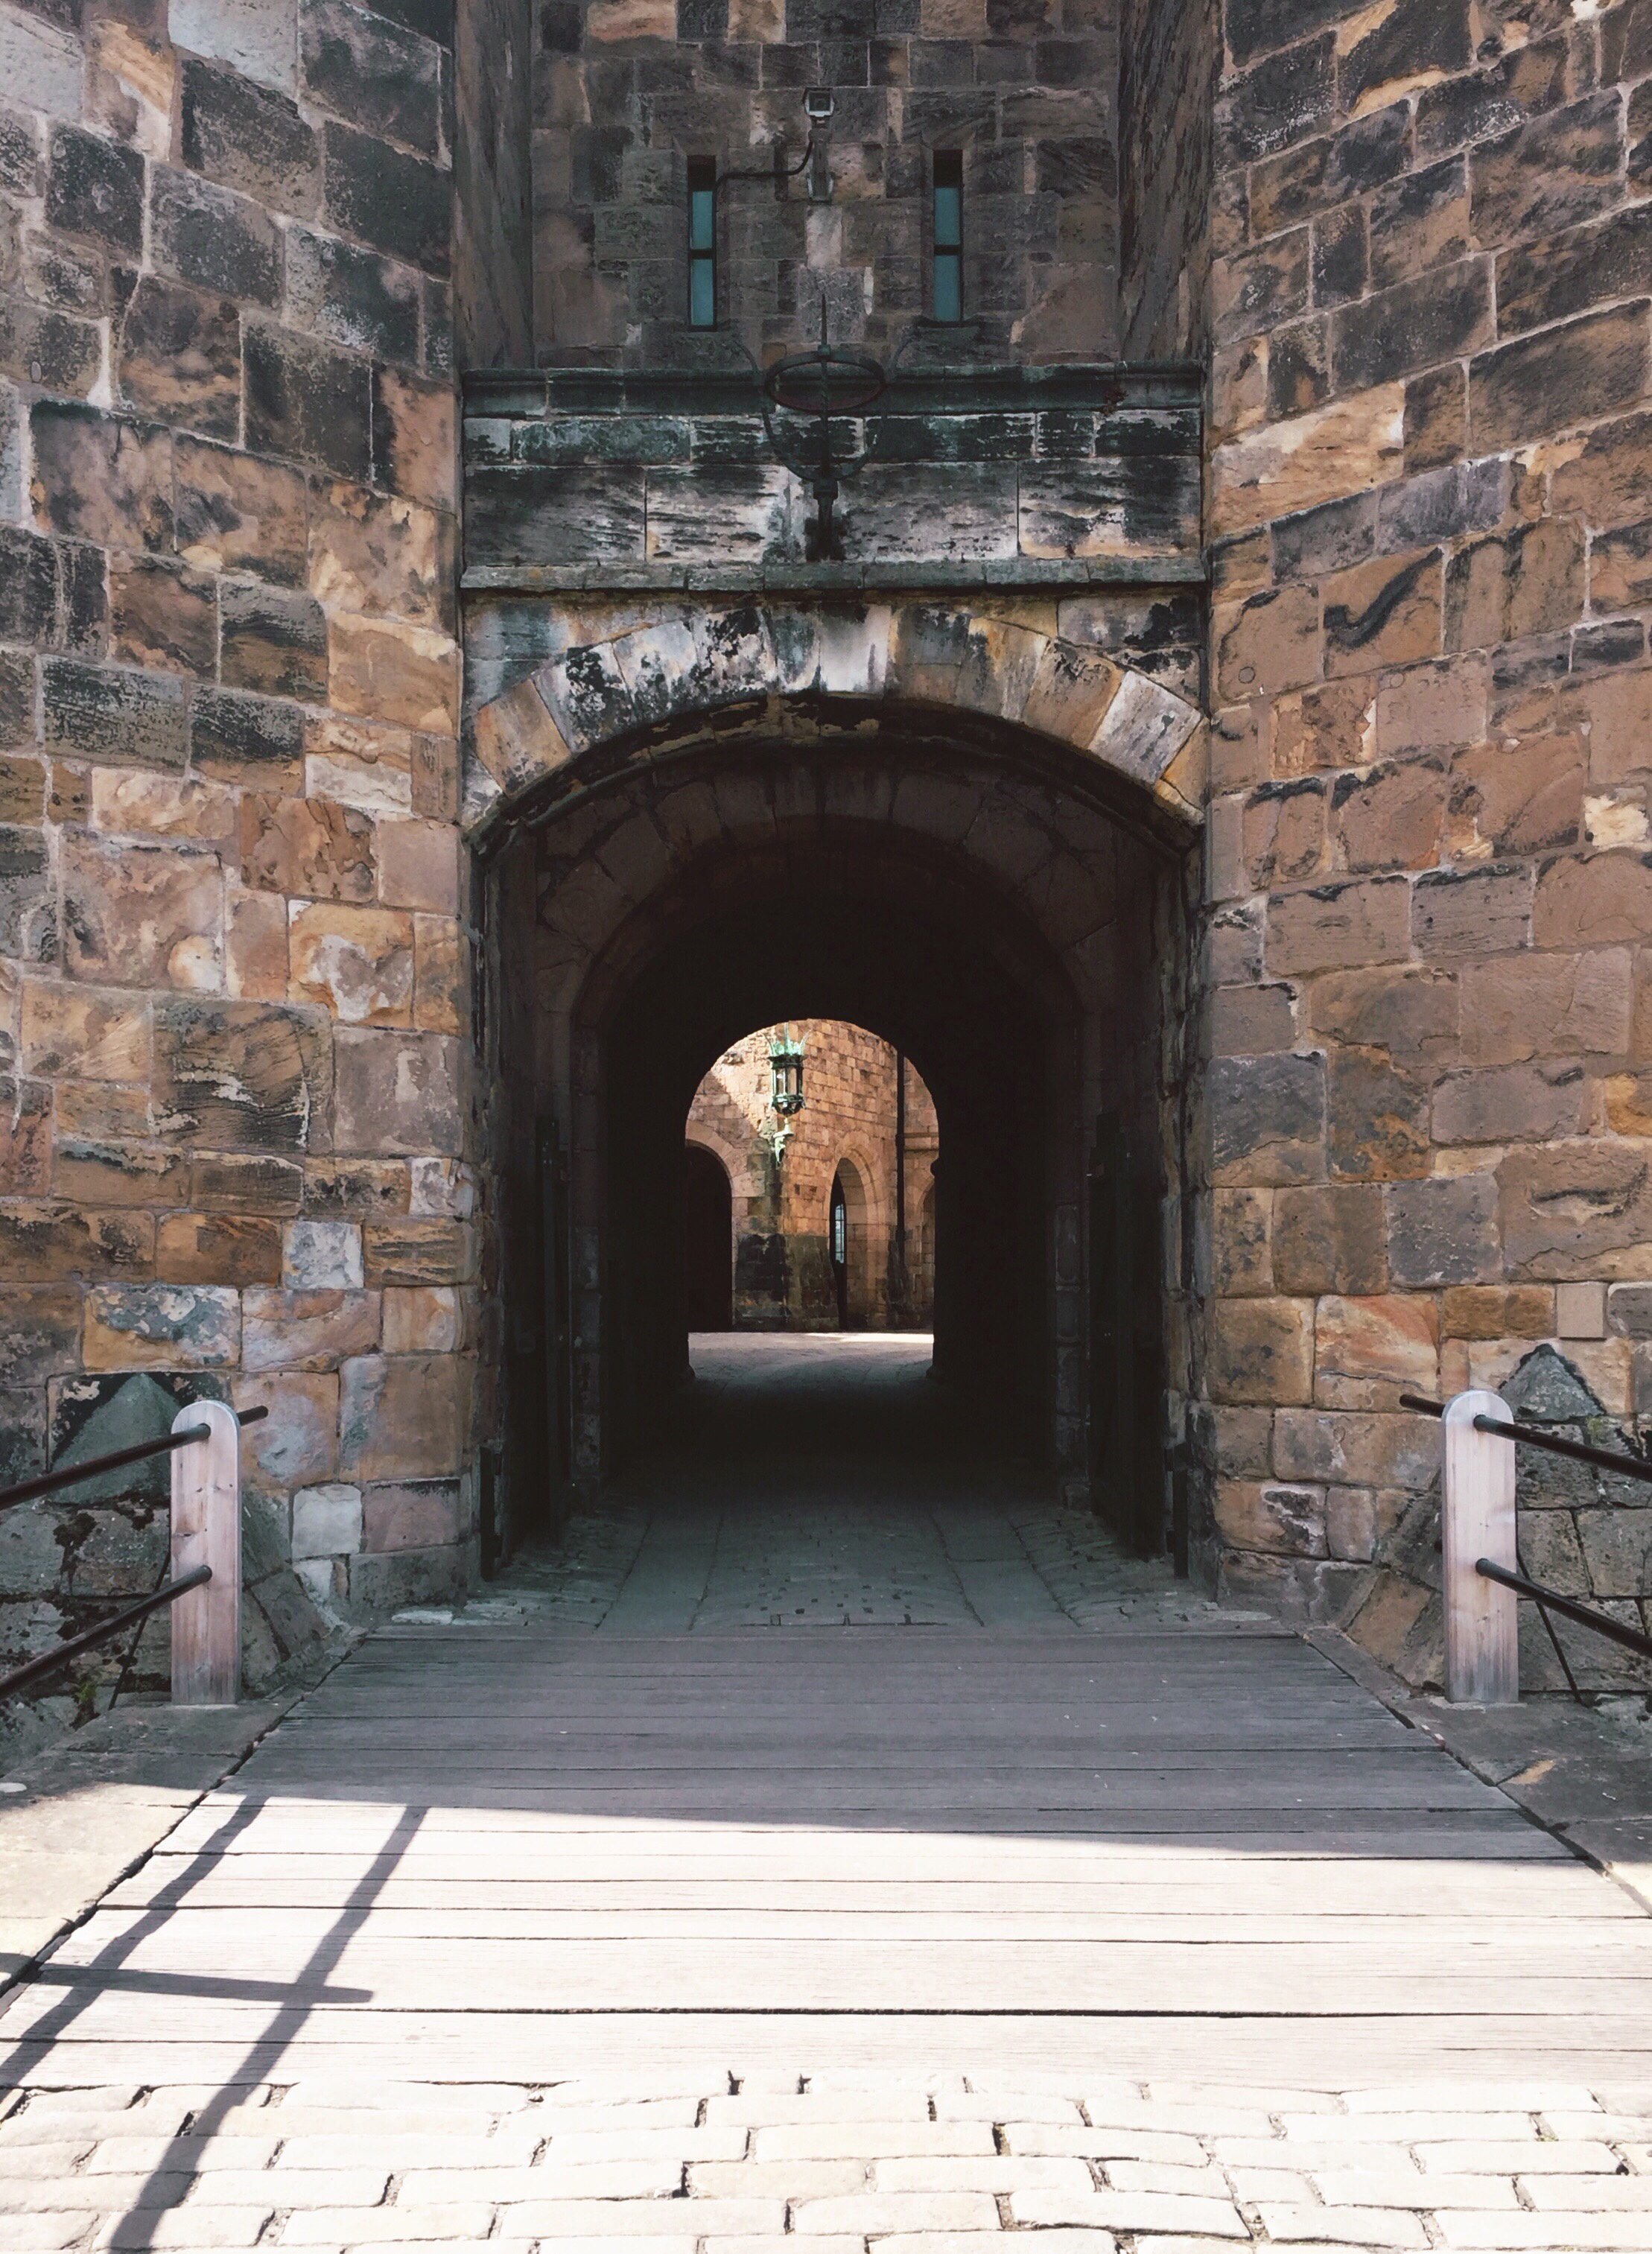 A doorway of a historic castle in Northumberland England